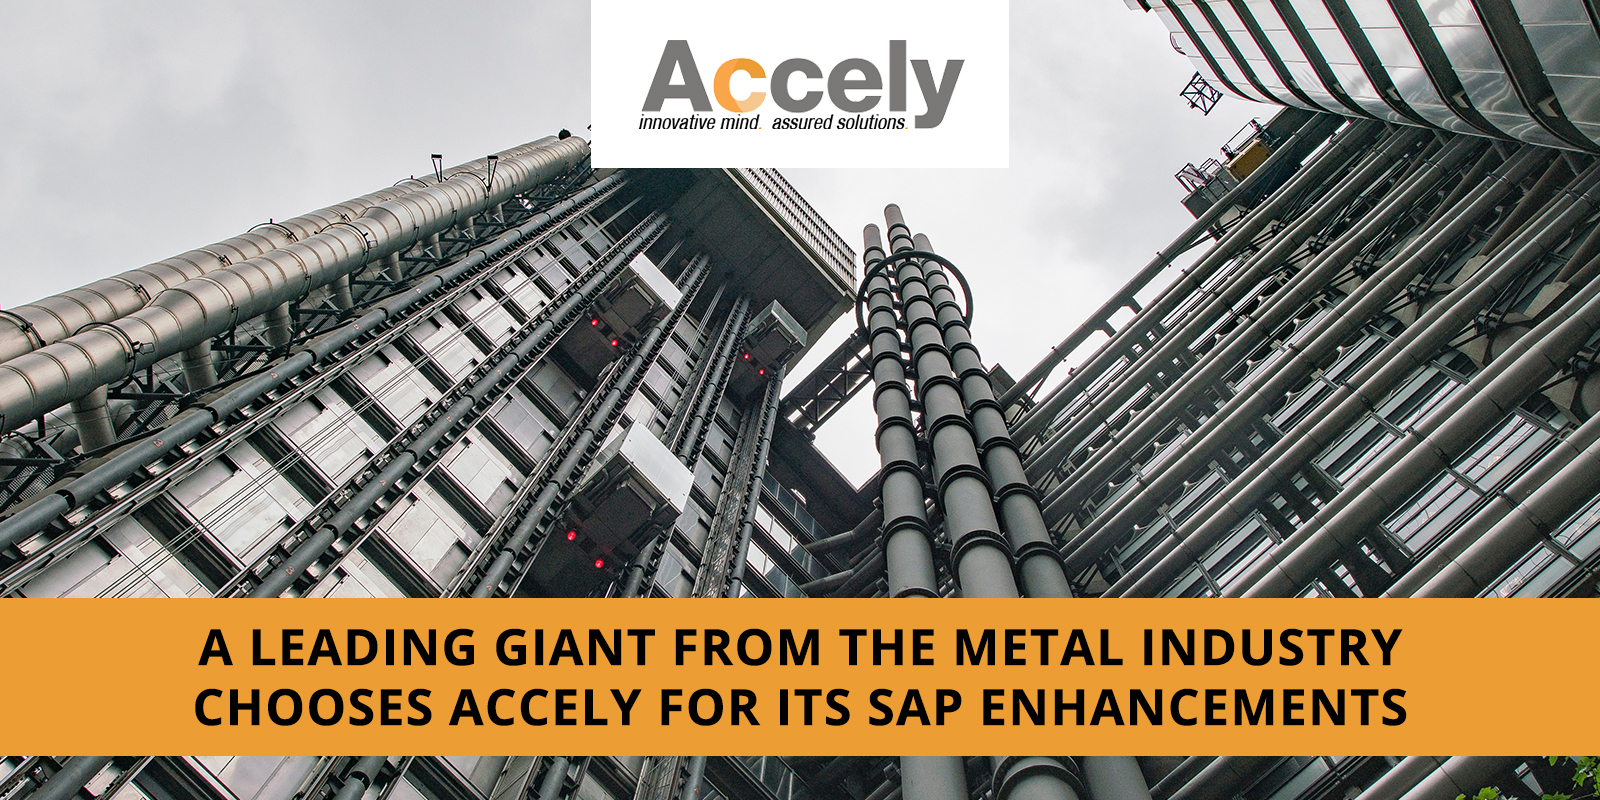 A Leading Giant from the Metal Industry Chooses Accely for its SAP Enhancements